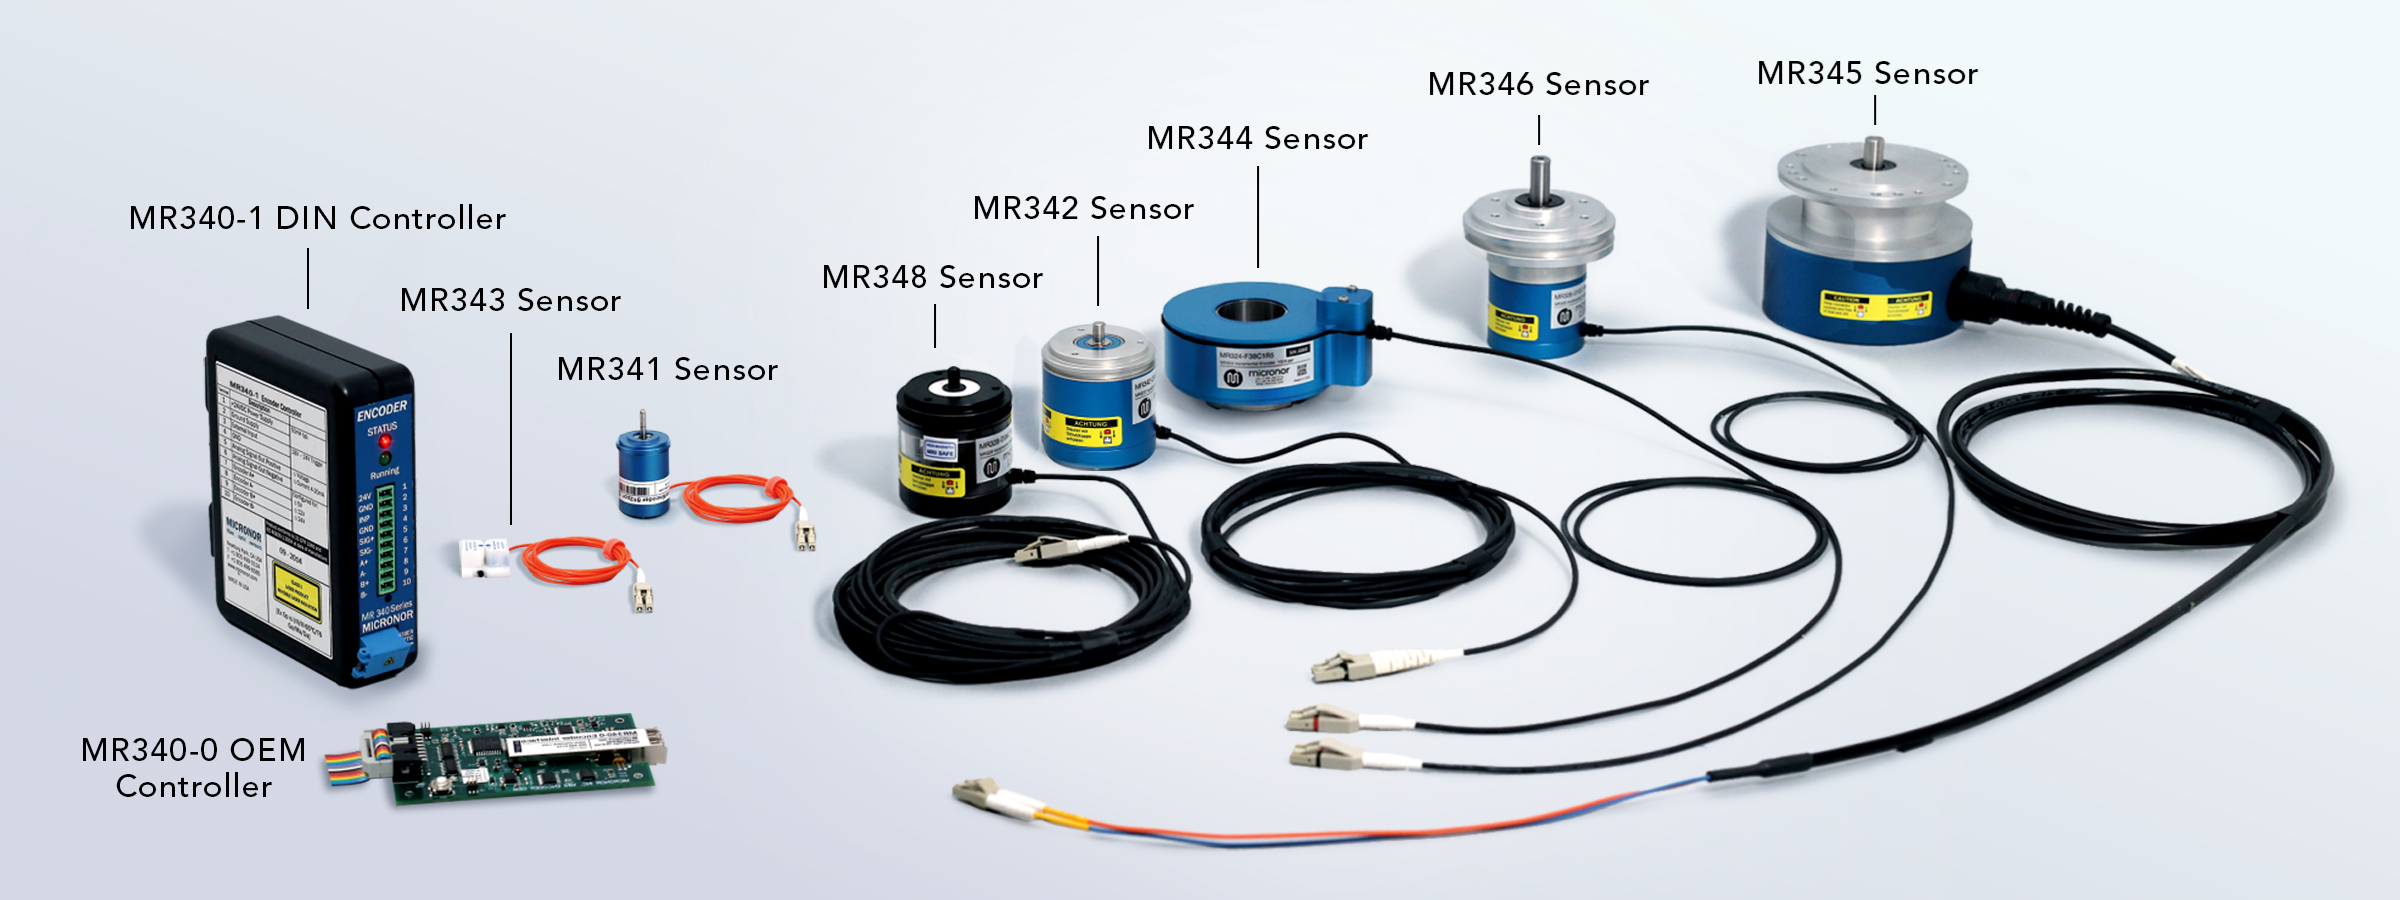 Mr340 Rotary And Linear Incremental Encoder Series Micronor 256 Tap Digitally Potentiometers